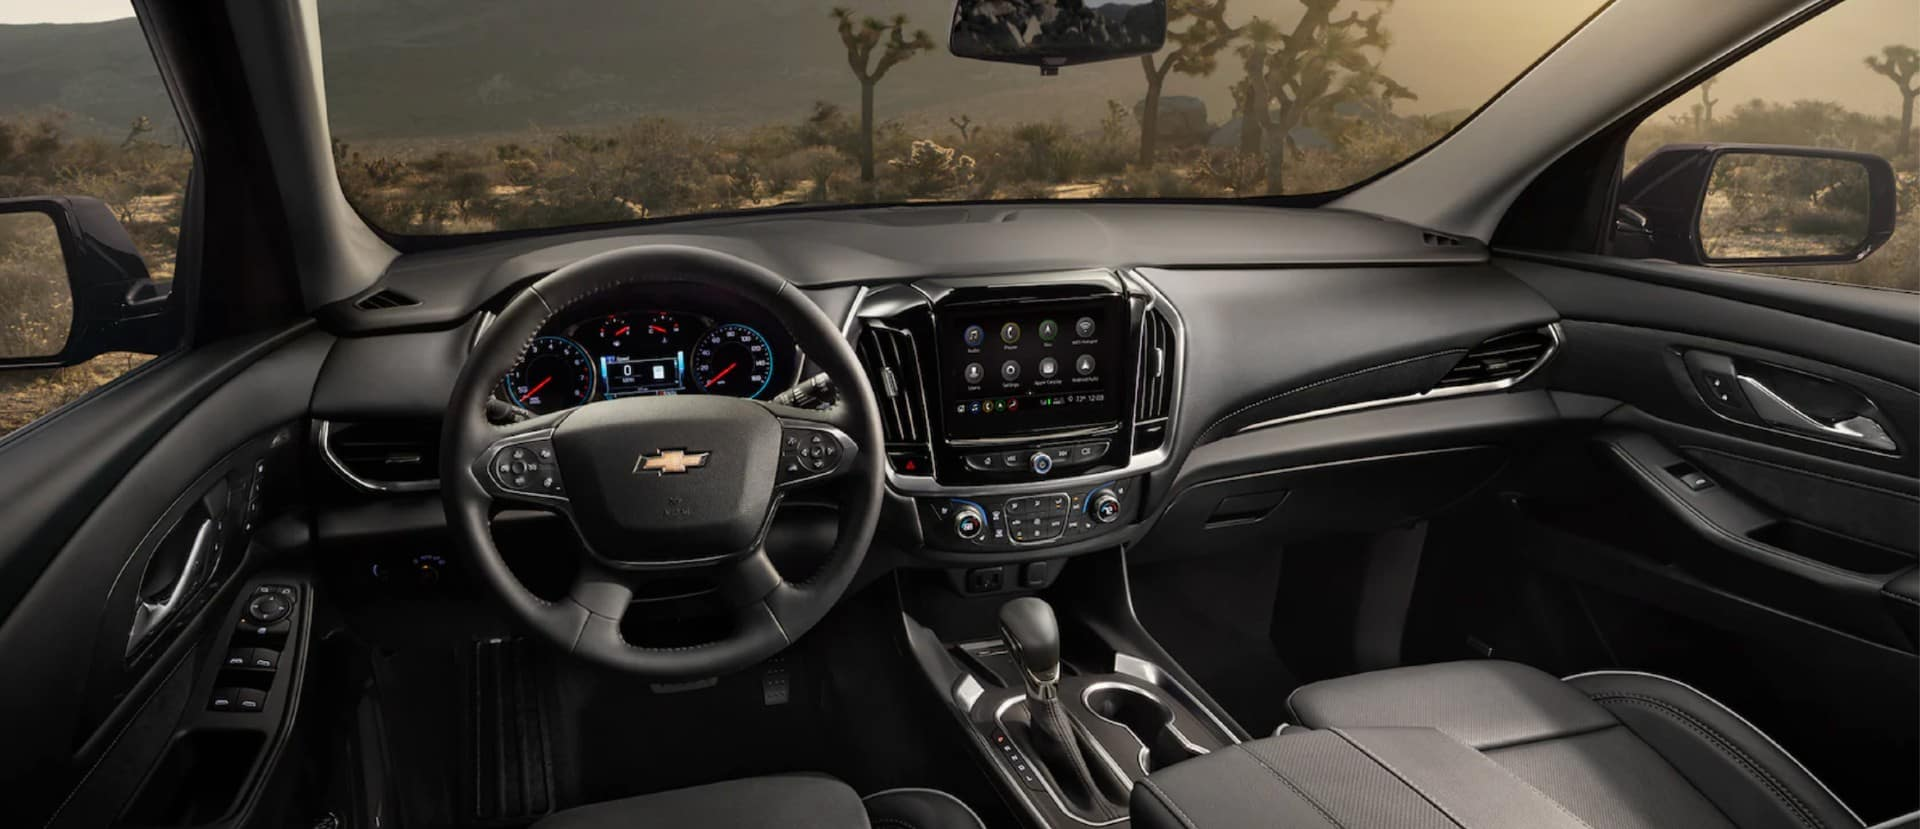 picture of Chevrolet traverse black 2021 interior display for Sale in Hooksett New Hampshire